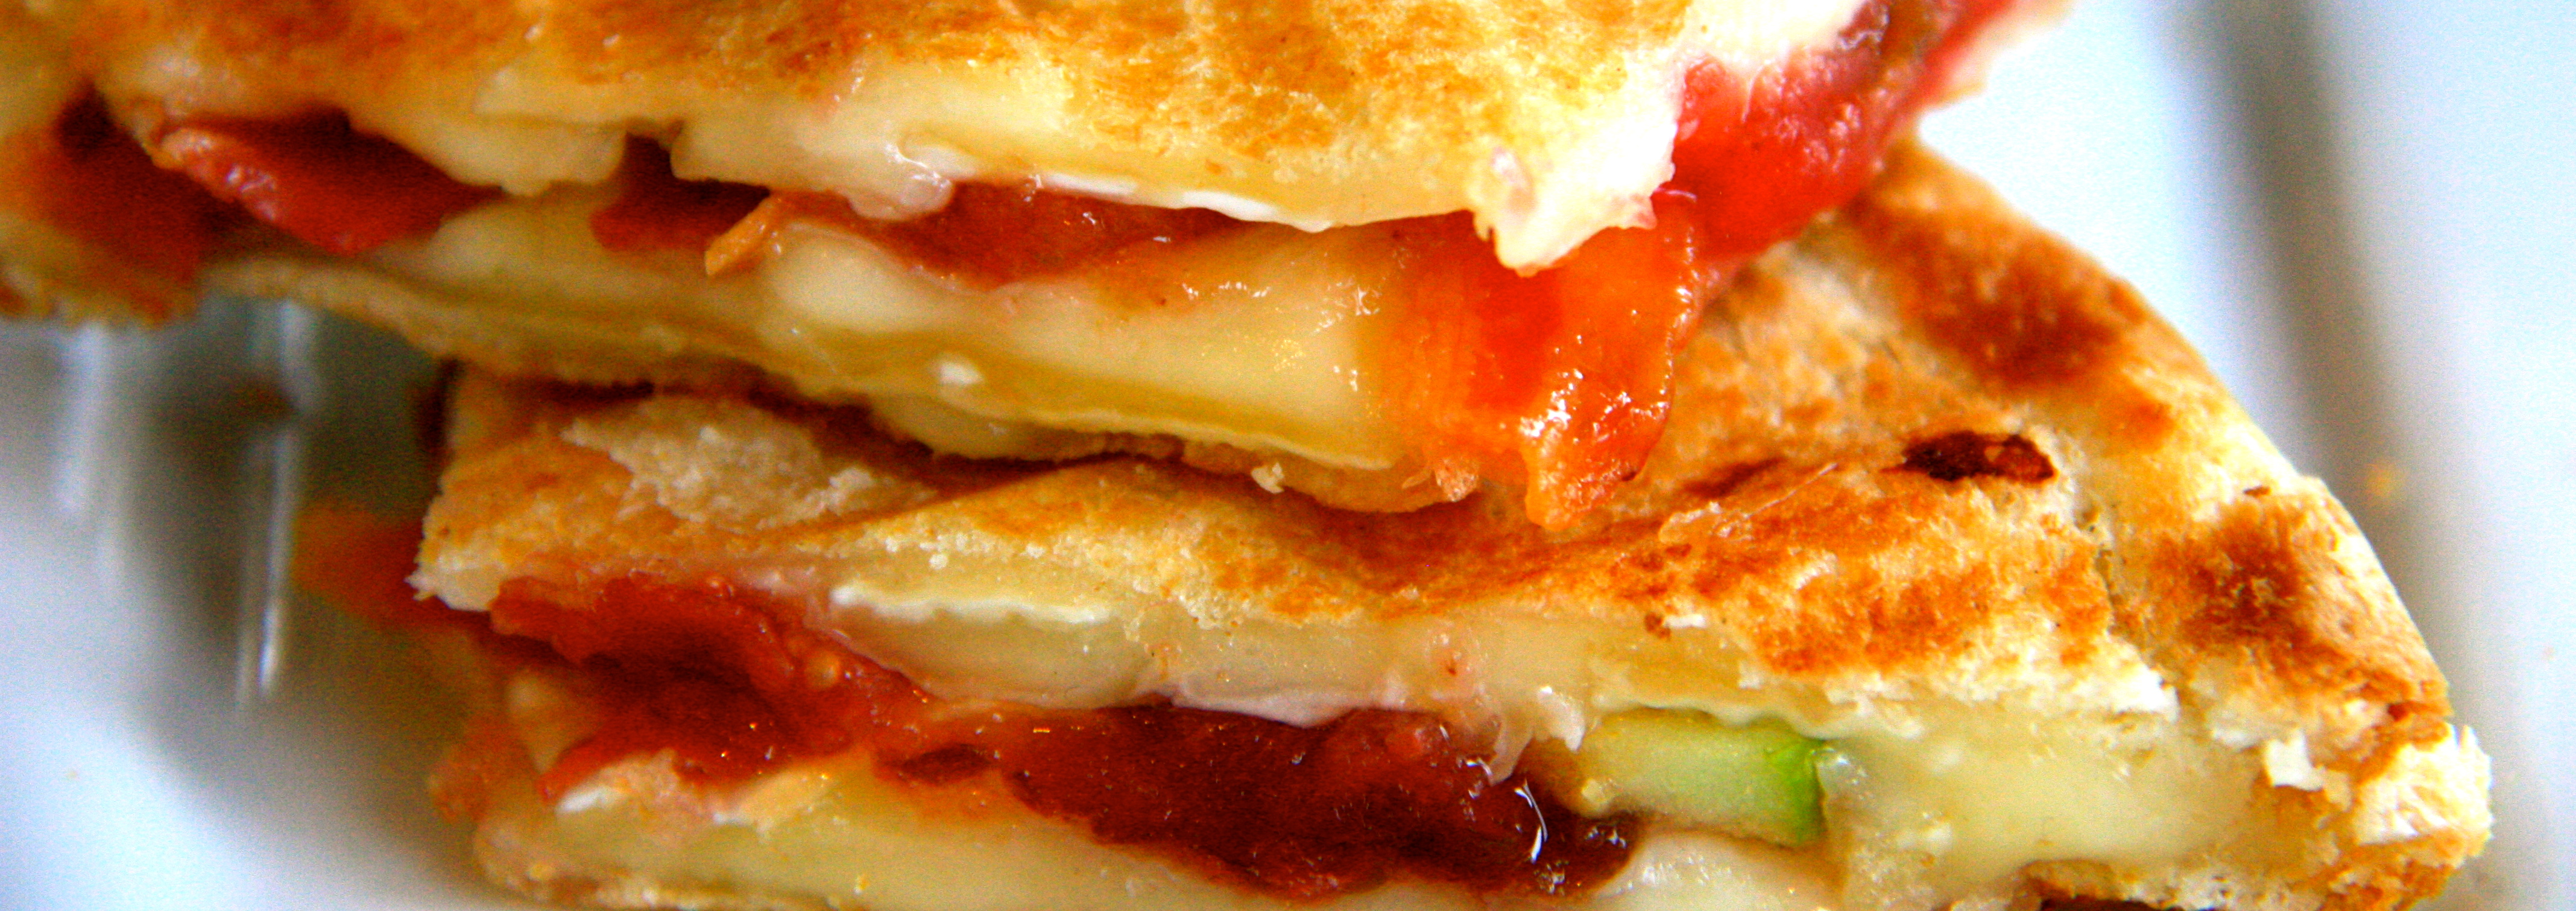 Grilled Cheese with Brie, Pancetta, Apple, & Fig Jam